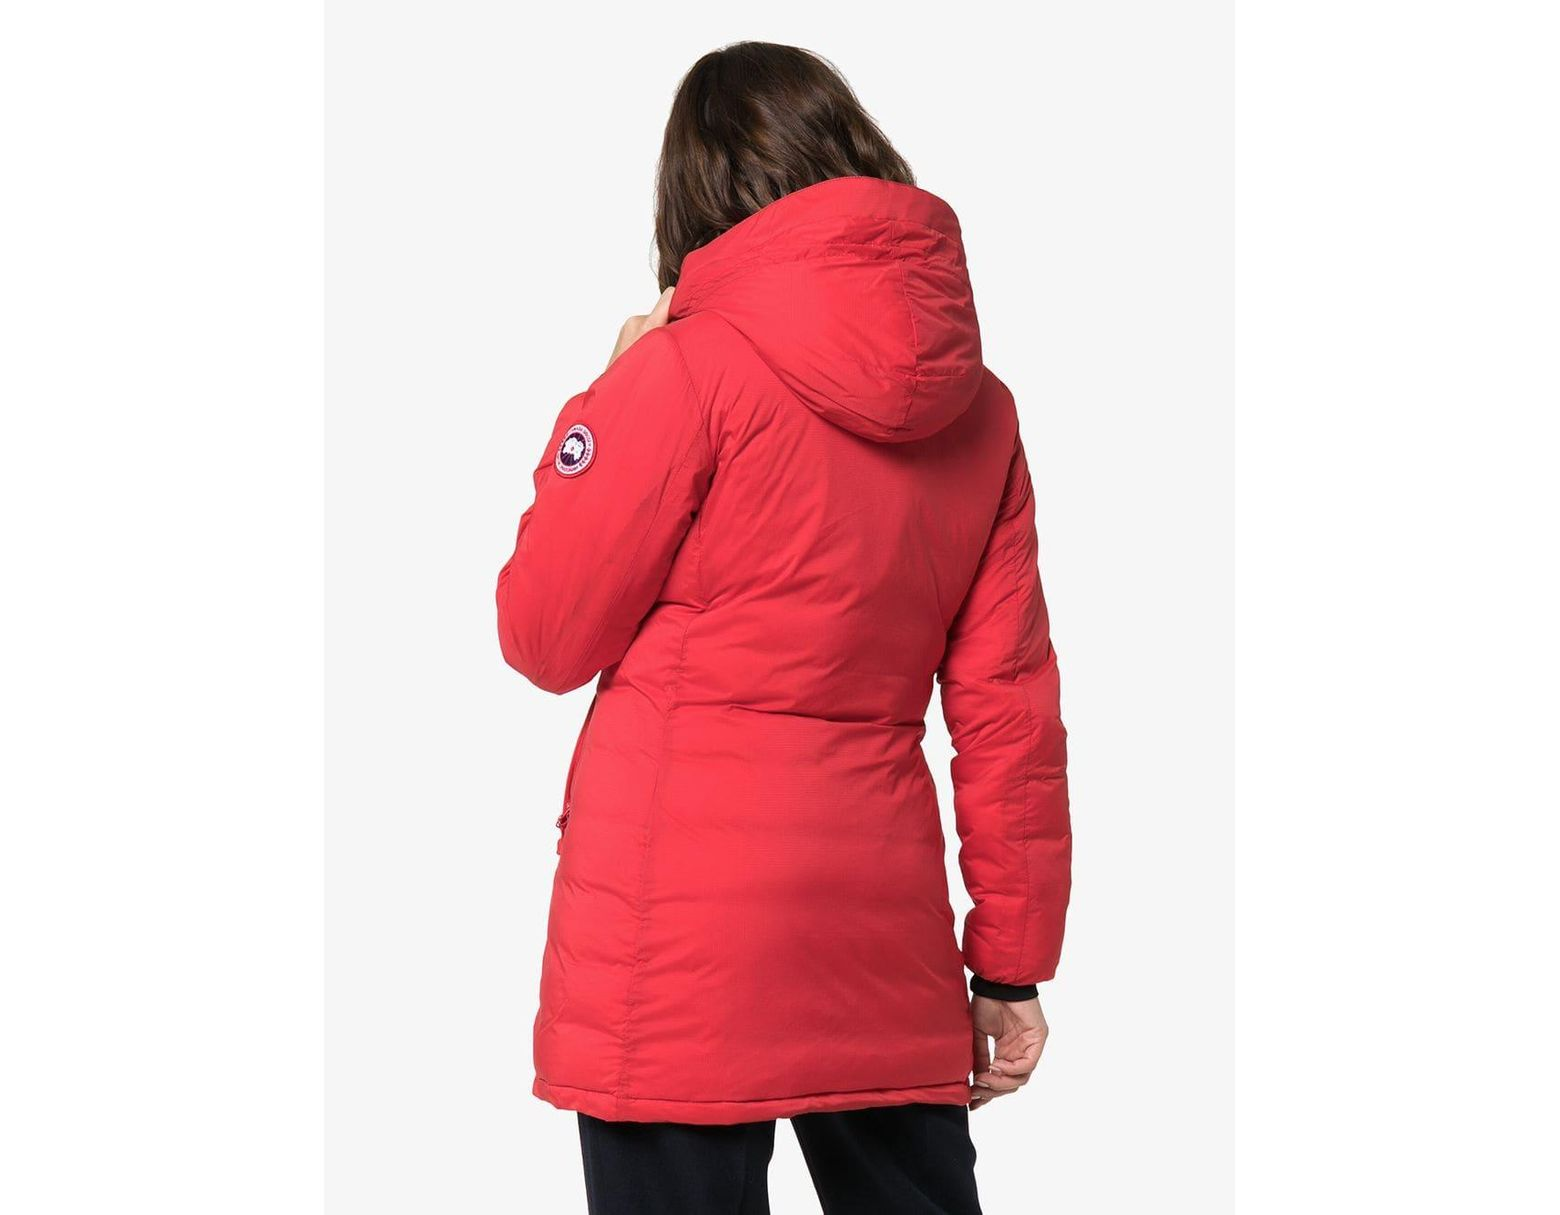 dd0dacf845a Women's Red Camp Hooded Jacket